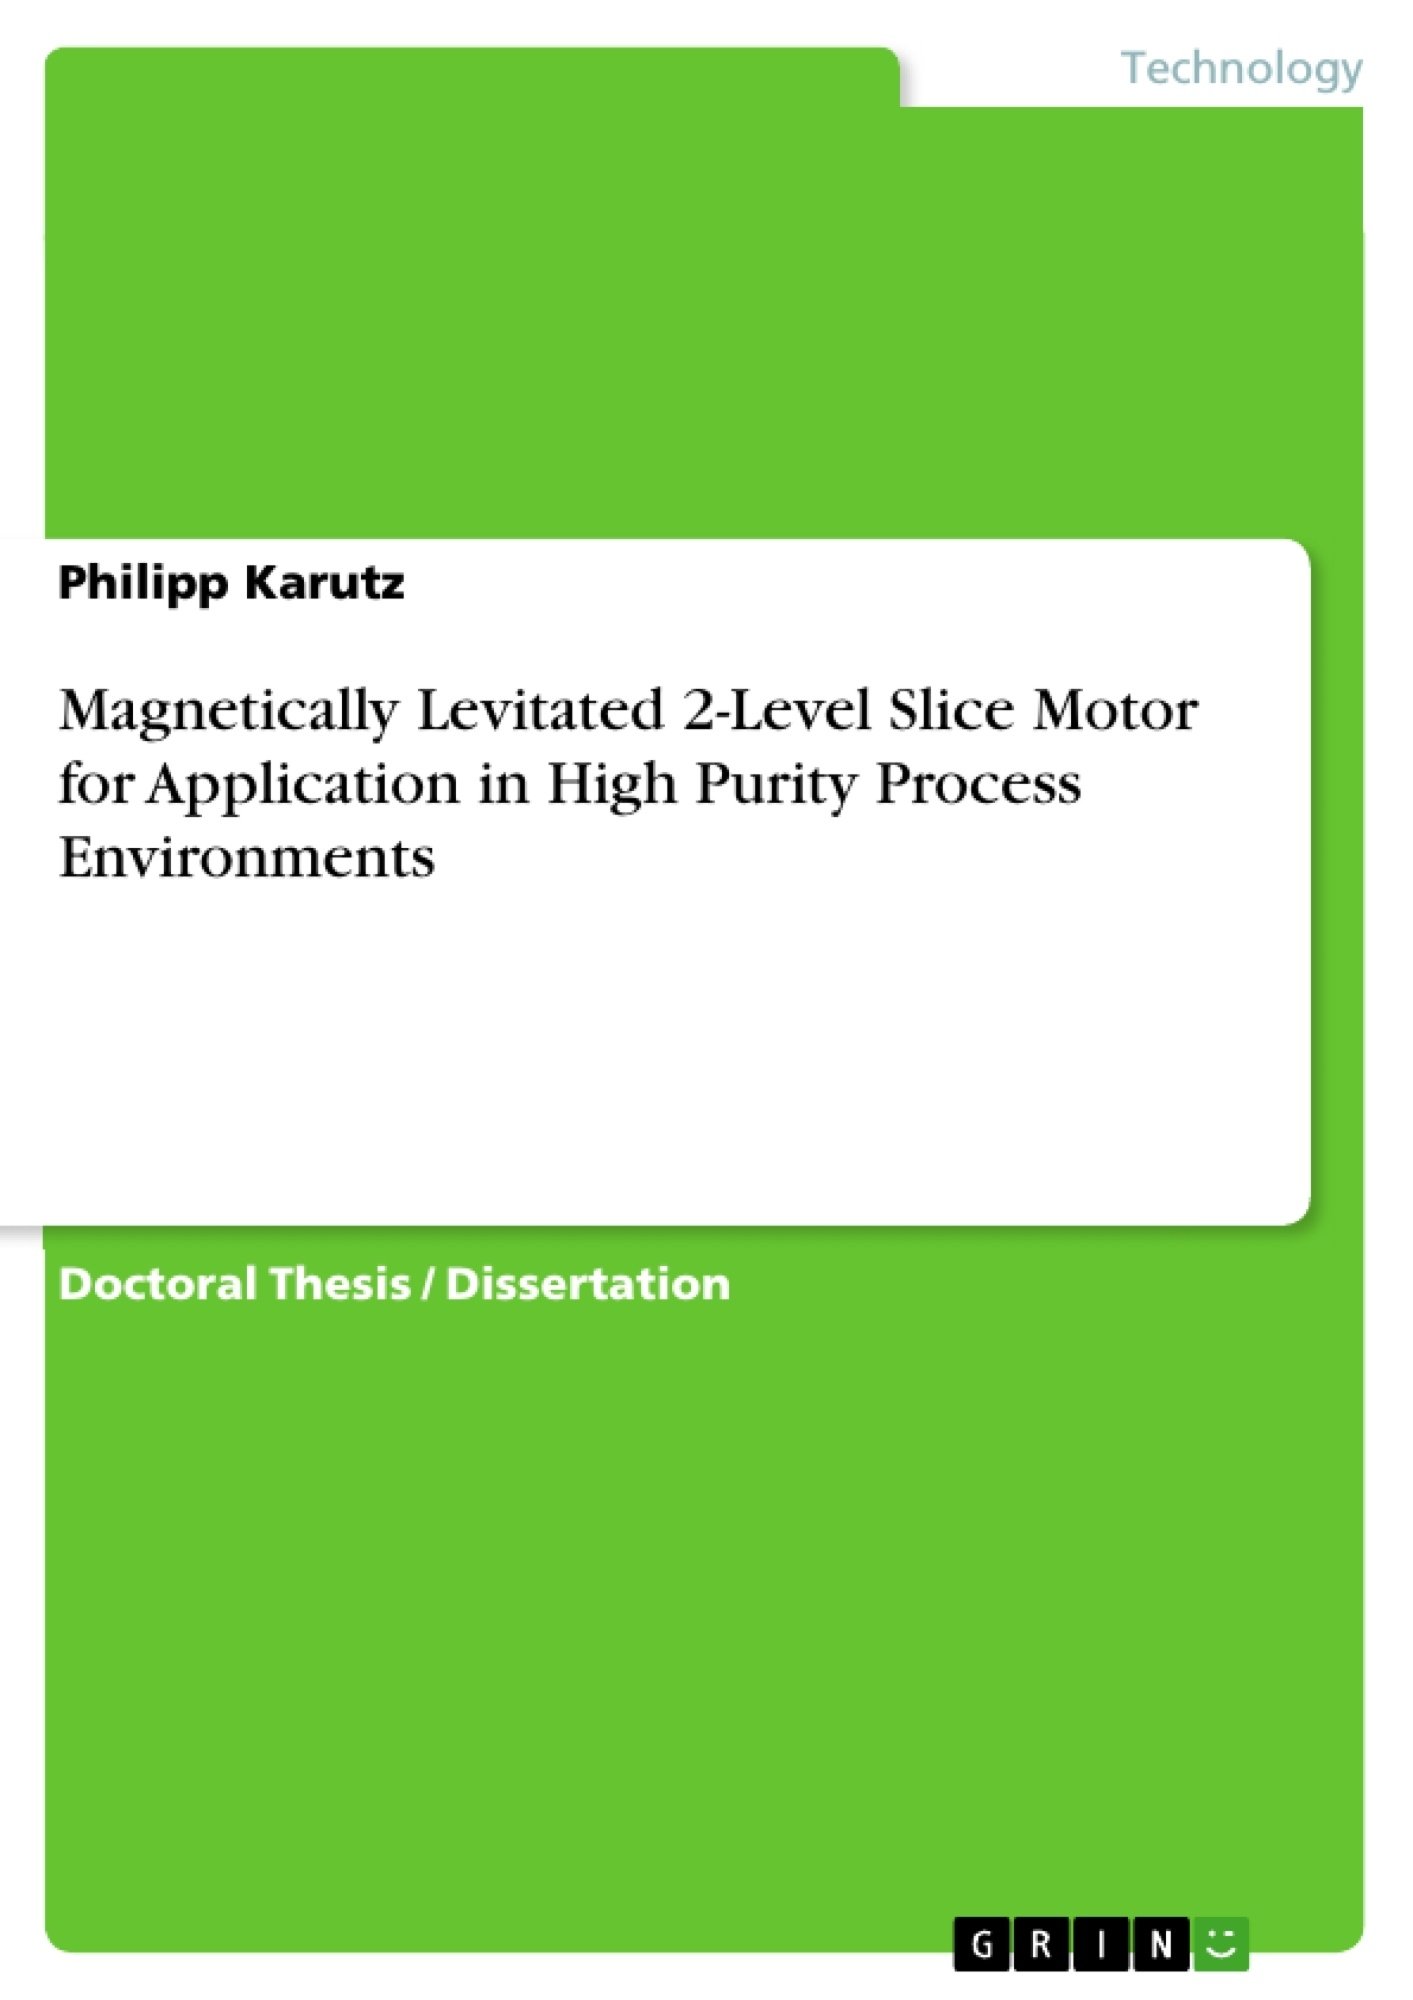 Title: Magnetically Levitated 2-Level Slice Motor for Application in High Purity Process Environments